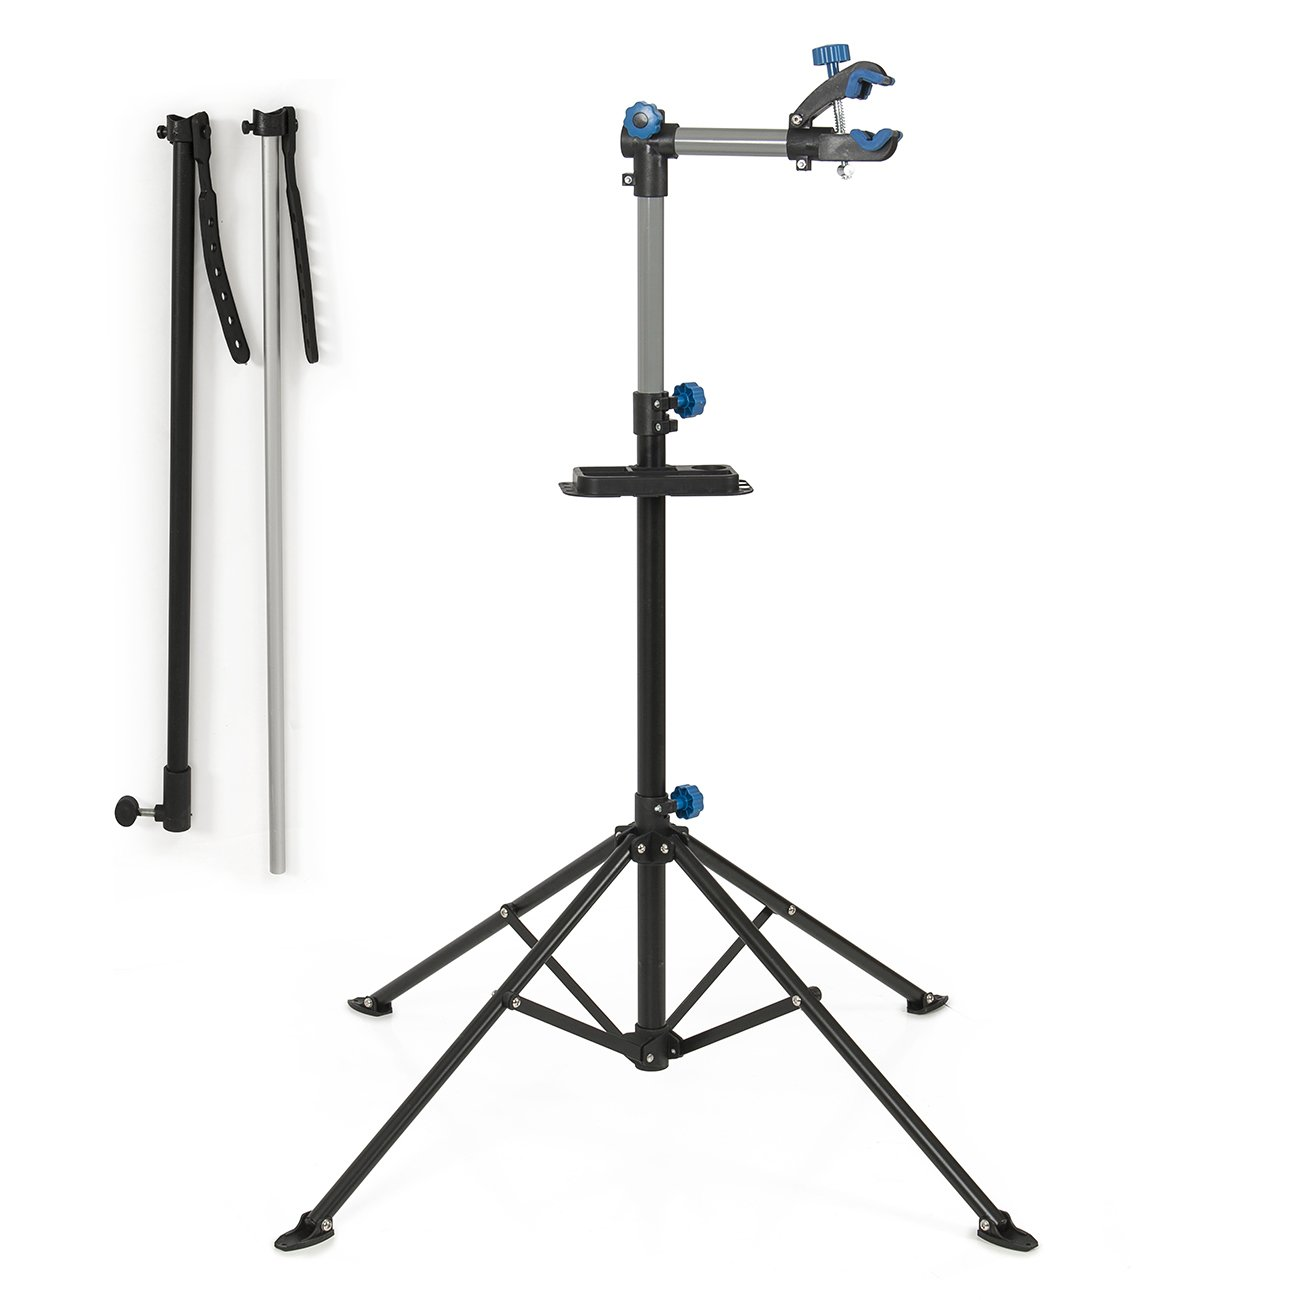 ARKSEN Pro Bike Adjustable 43'' to 75'' Repair Stand w/Telescopic Arm Bicycle Cycle Rack